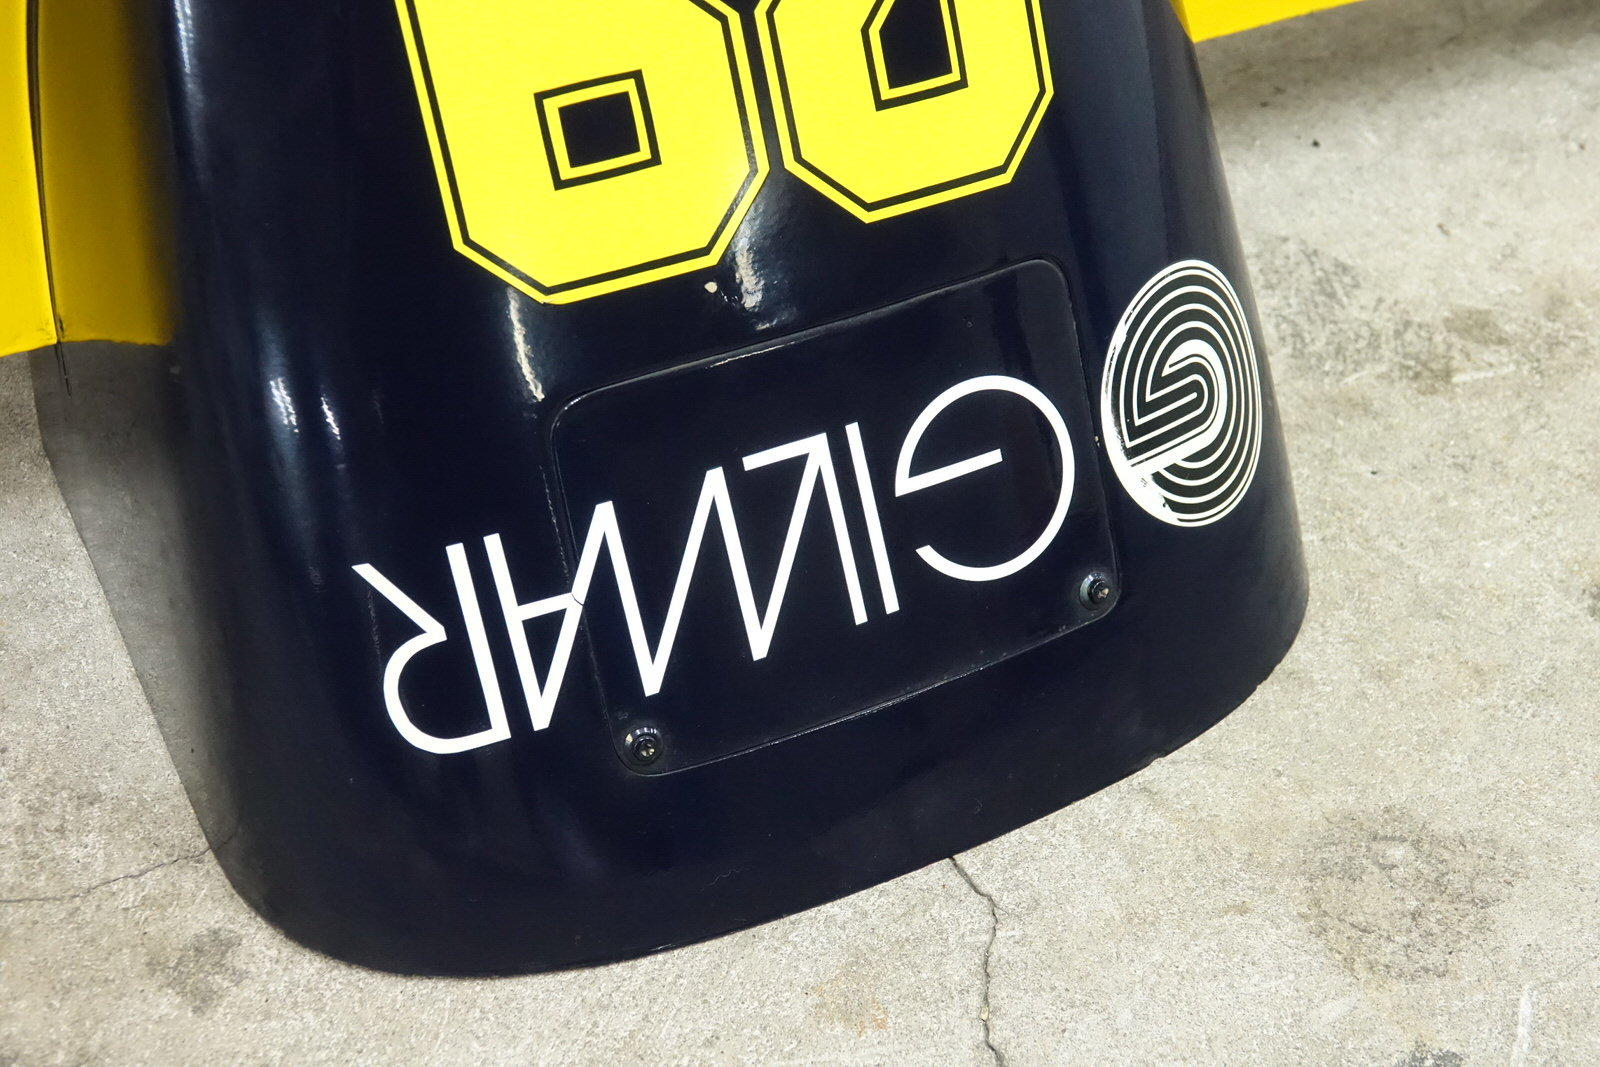 1985 Minardi M185 F1 Front Nose For Sale (picture 3 of 8)